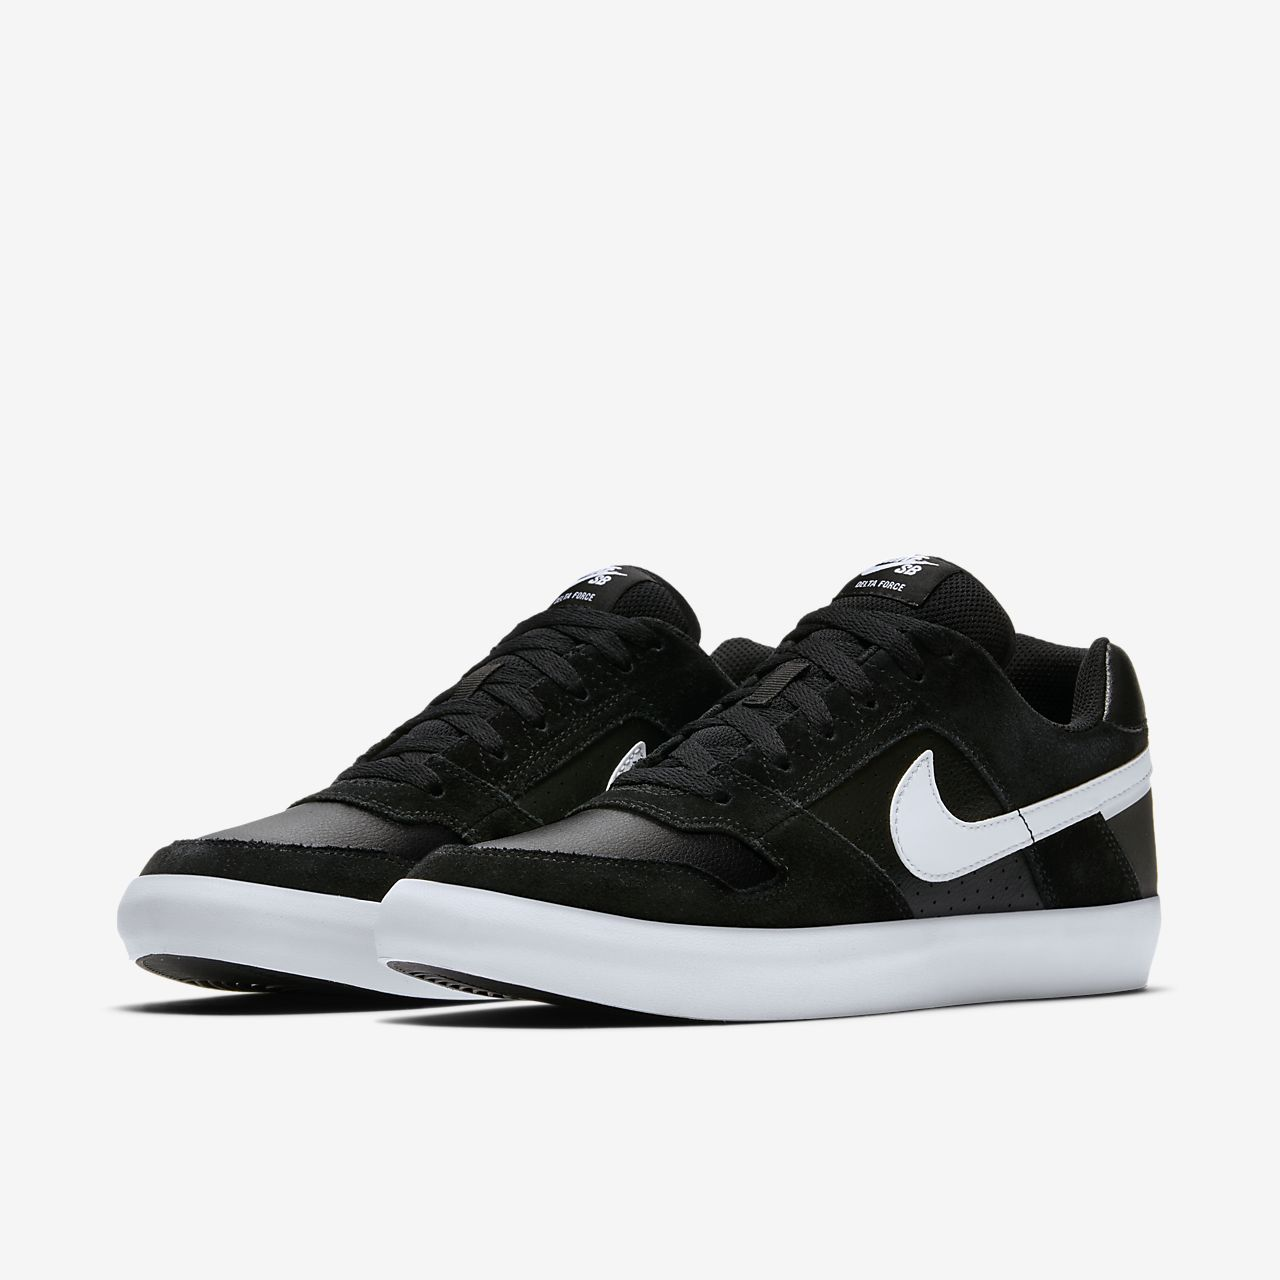 Nike SB Delta Force Vulc Men's Skateboarding Shoes Black/Grey jR3387Y